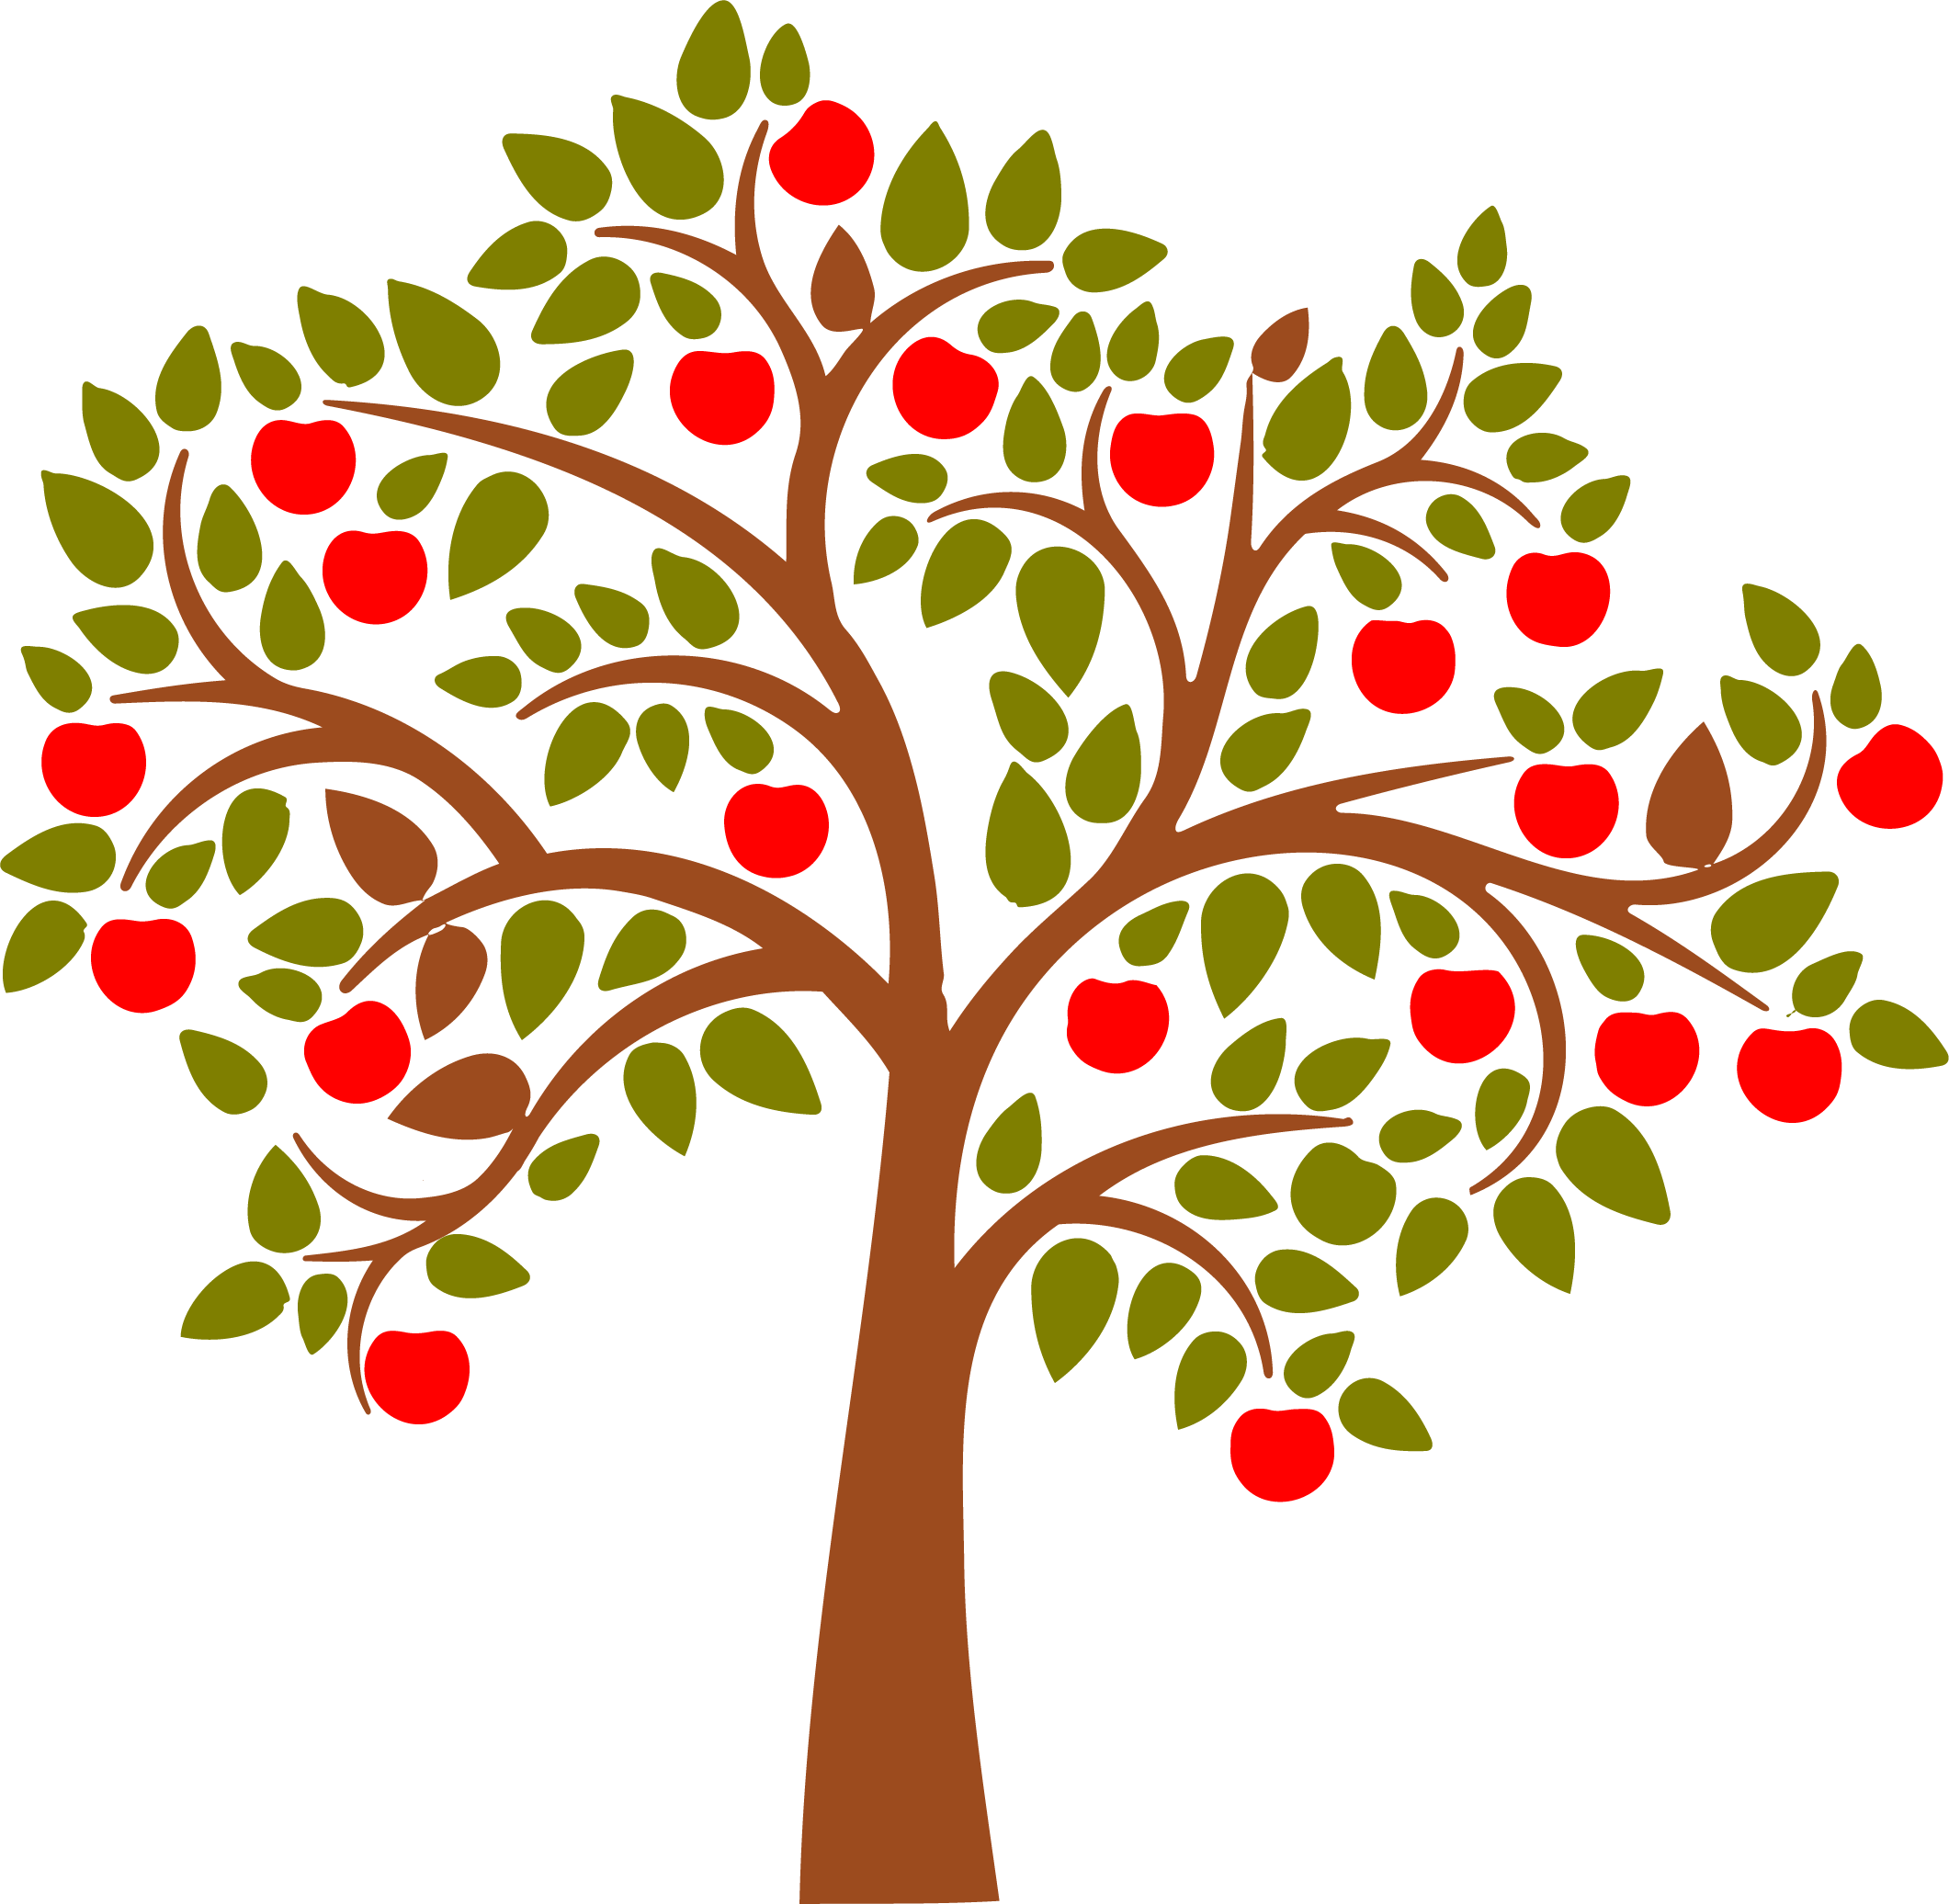 Handprint tree clipart banner stock Apple Tree Drawing at GetDrawings.com | Free for personal use Apple ... banner stock